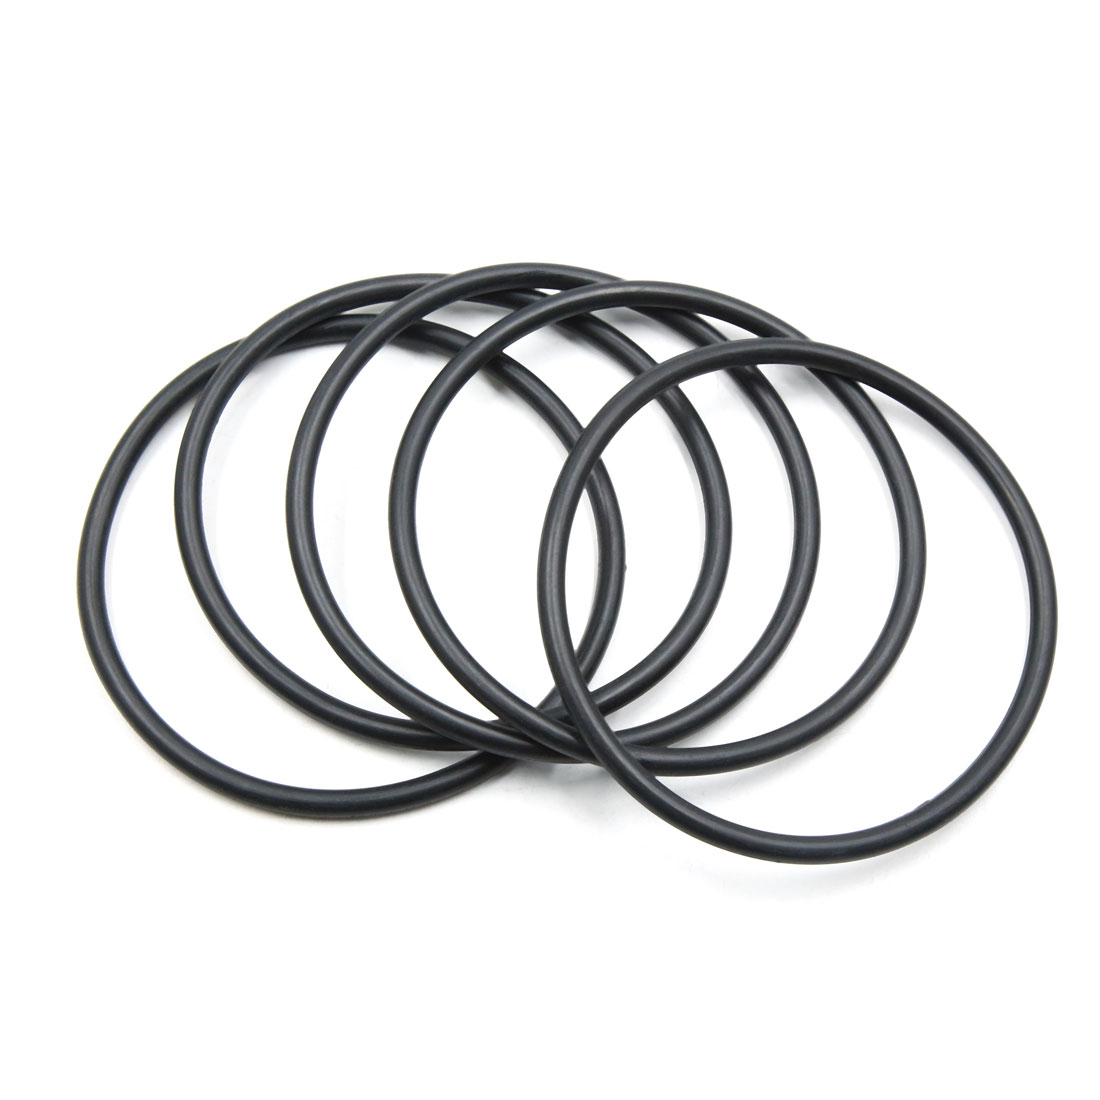 5pcs Black NBR O-Ring Seal Gasket Washer for Automotive Car 95mm x 5.3mm